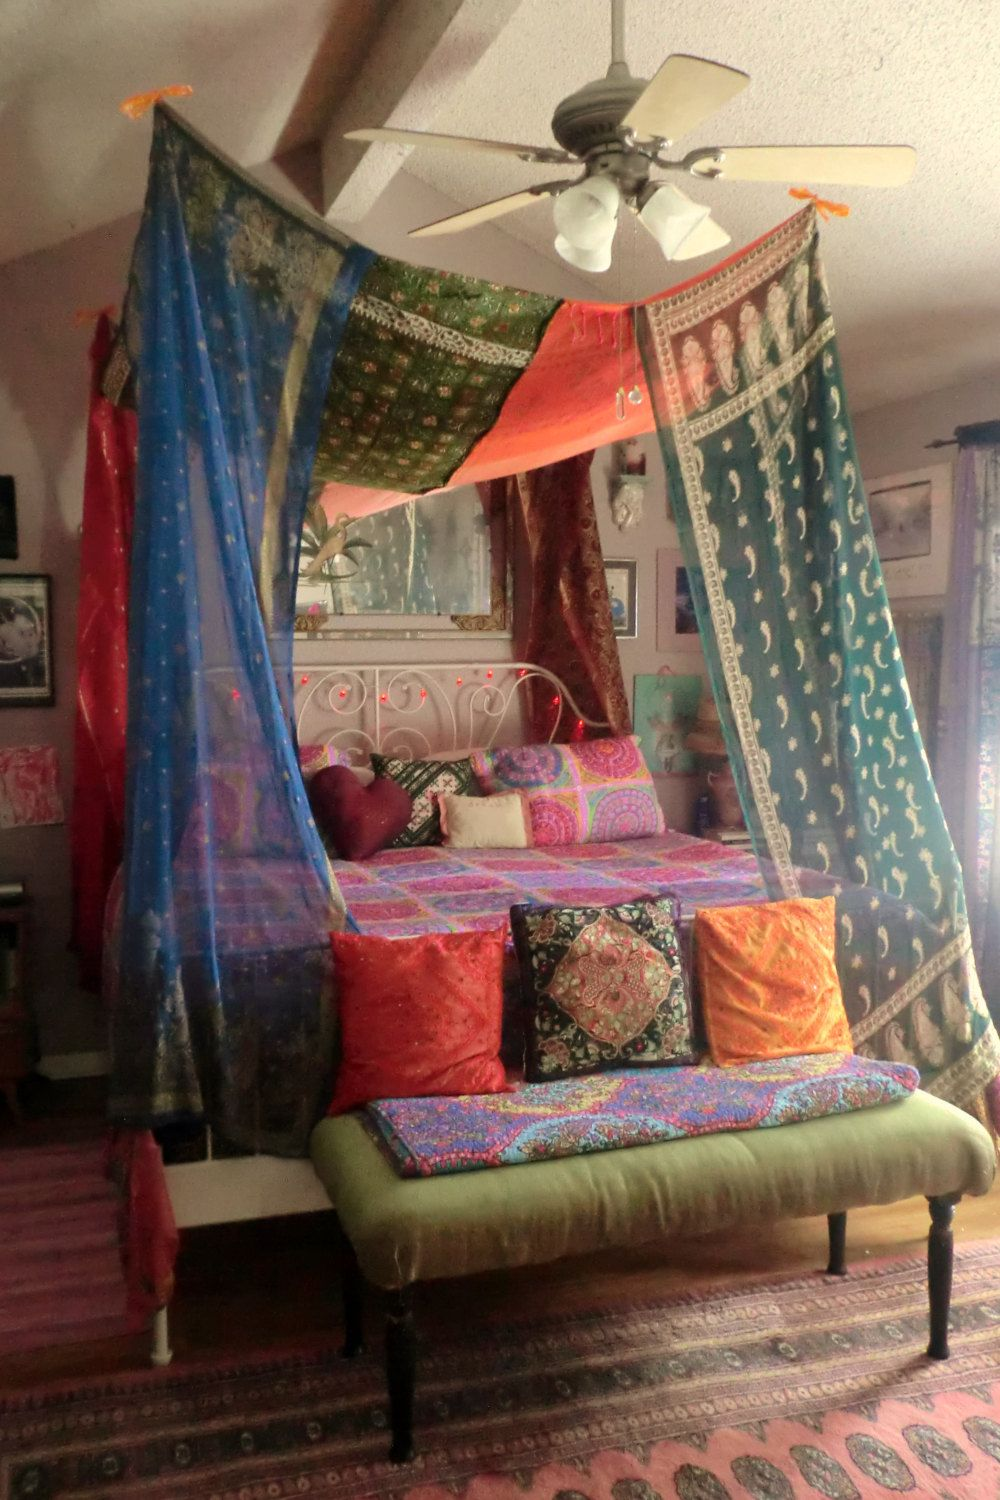 Bed Canopy Diy I Could Drape In The Winter When My Allergies Have Gone Even